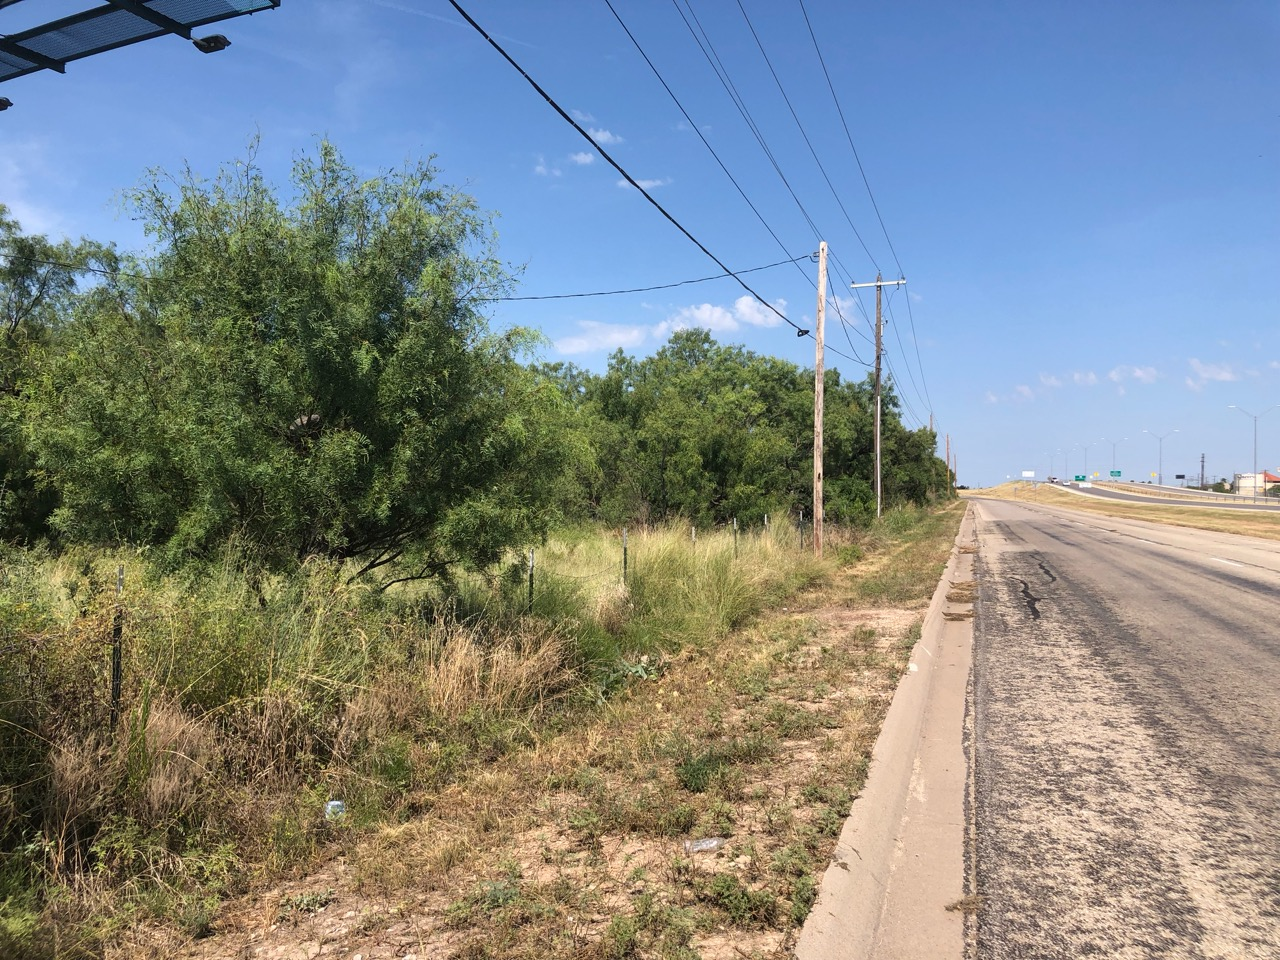 The 21-acre plot of land where apartments are proposed is currently overgrown. (LIVE! Photo/Joe Hyde)